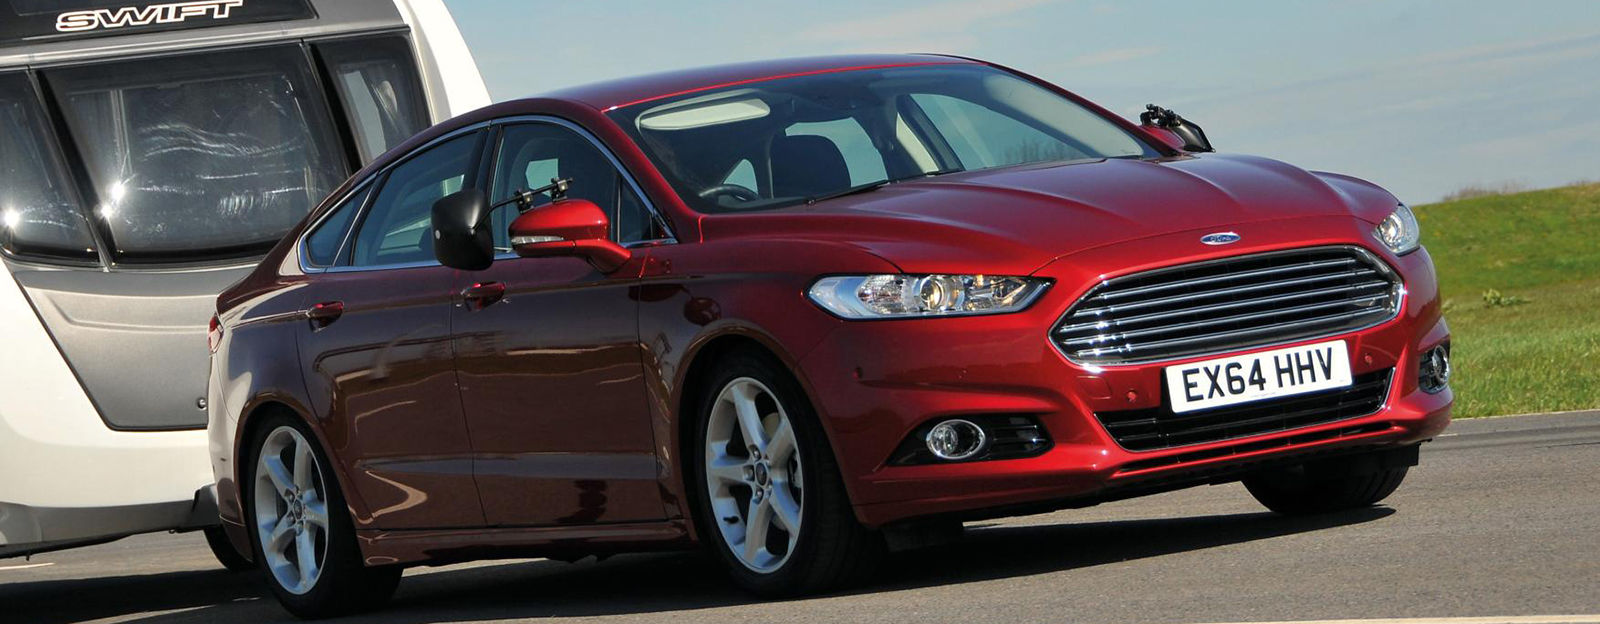 ford mondeo estate sizes dimensions guide carwow. Black Bedroom Furniture Sets. Home Design Ideas